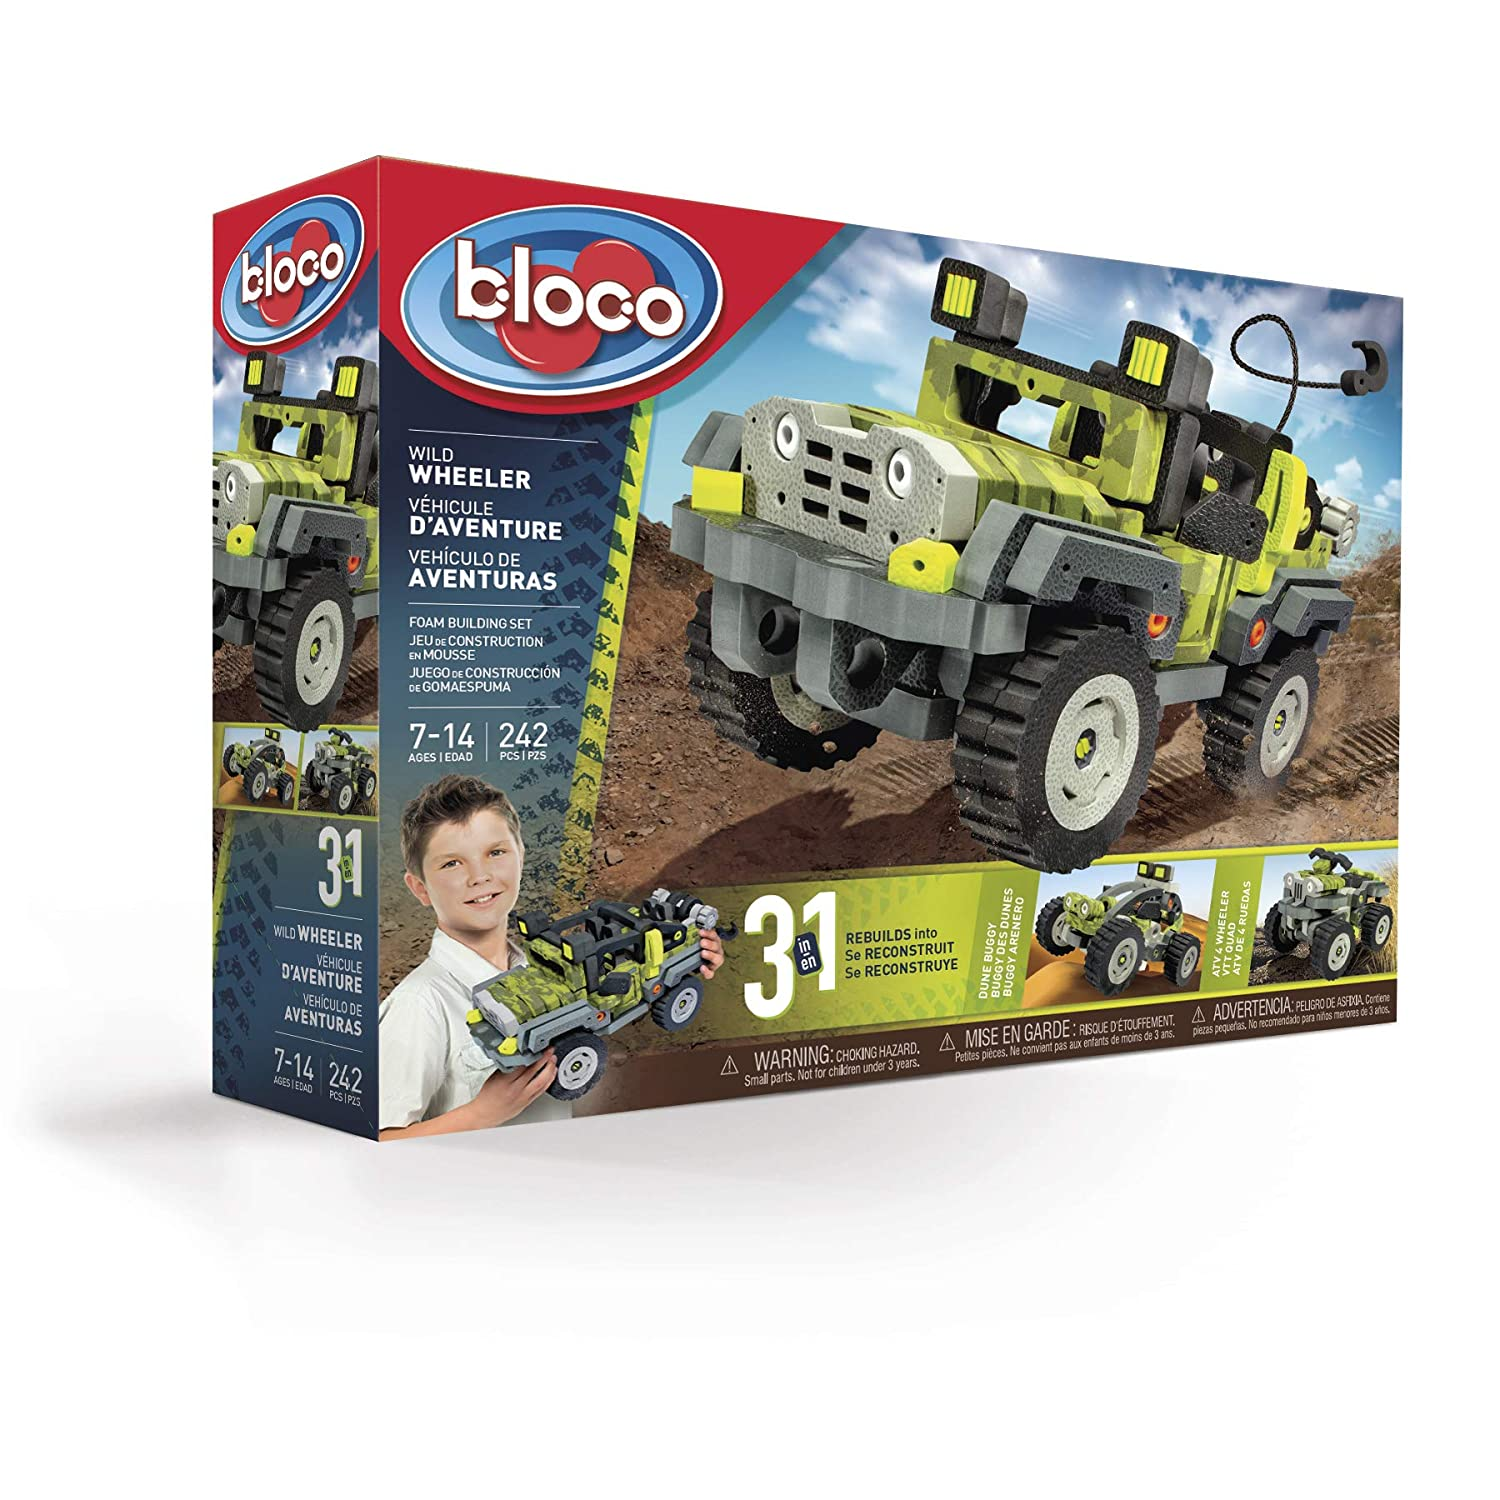 Amazon.com: Bloco Toys BC-35004 Wild Wheeler, 3 in 1 Jeep, ATV, and Dune Buggy Building Kit Toy, Green/Black Yellow/Grey: Toys & Games